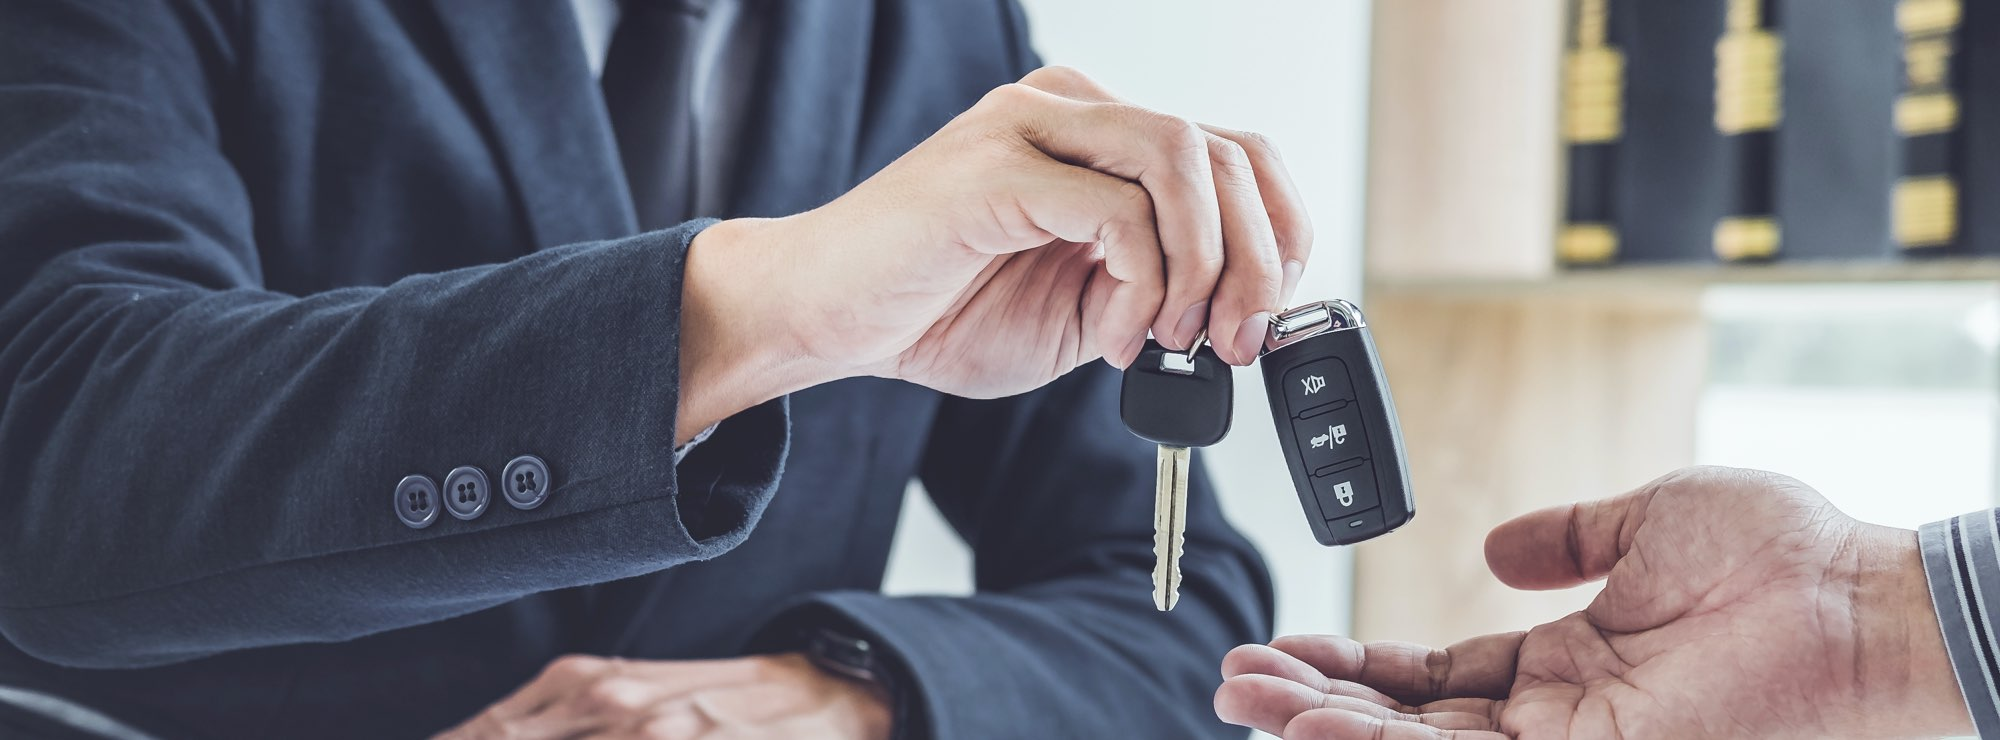 Handing over car keys to new owner